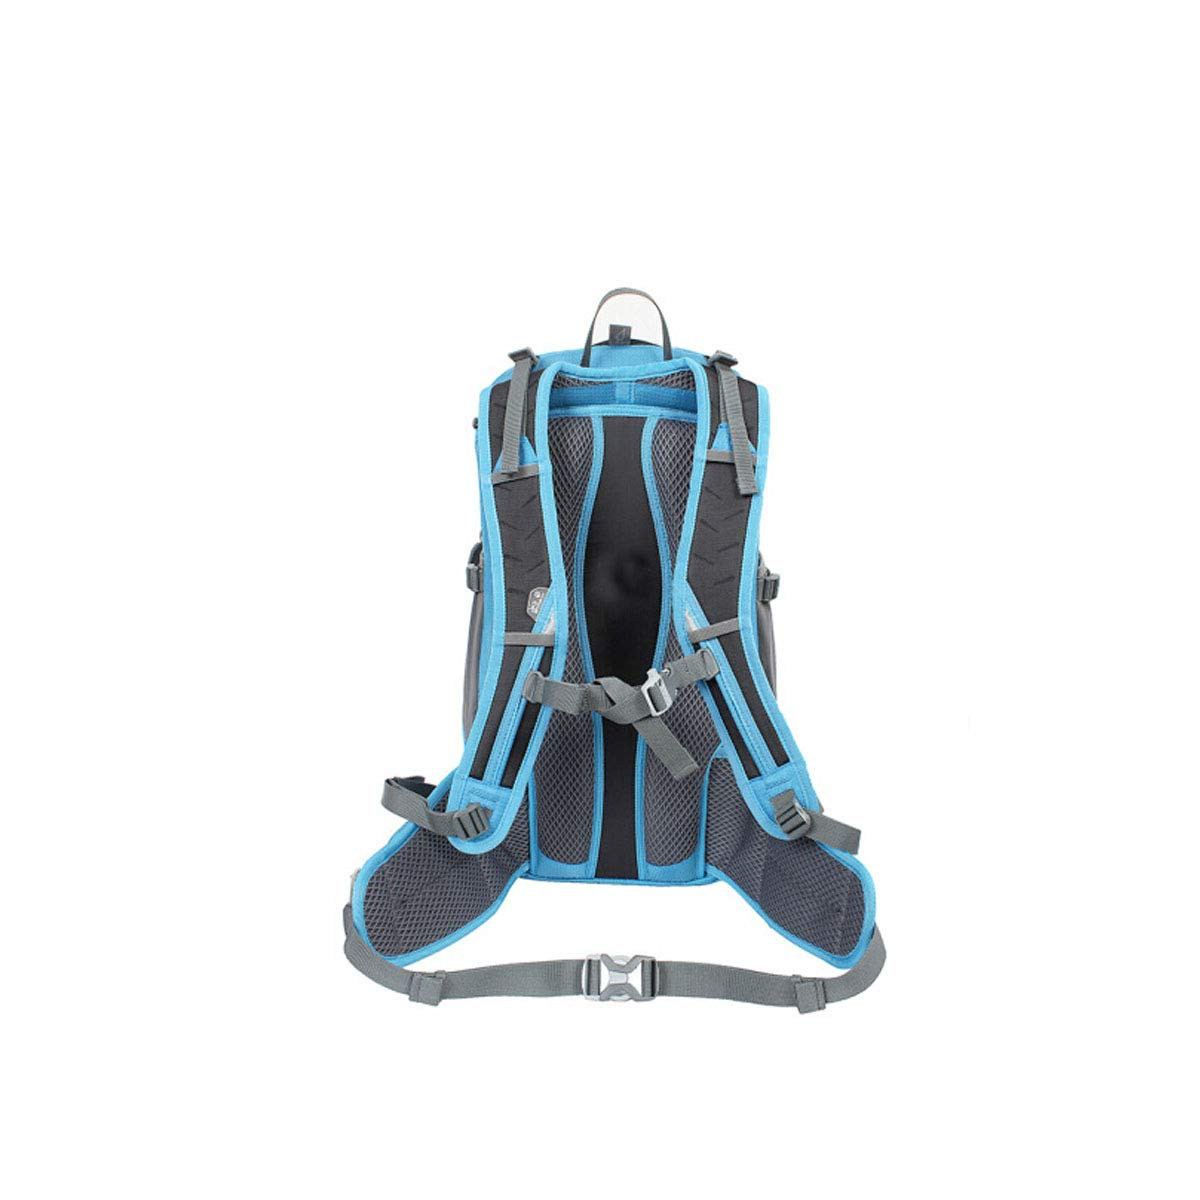 Chenjinxiang Casual Ultra Lightweight Comfortable Travel Backpack, Blue (Color : Blue) by Chenjinxiang (Image #5)